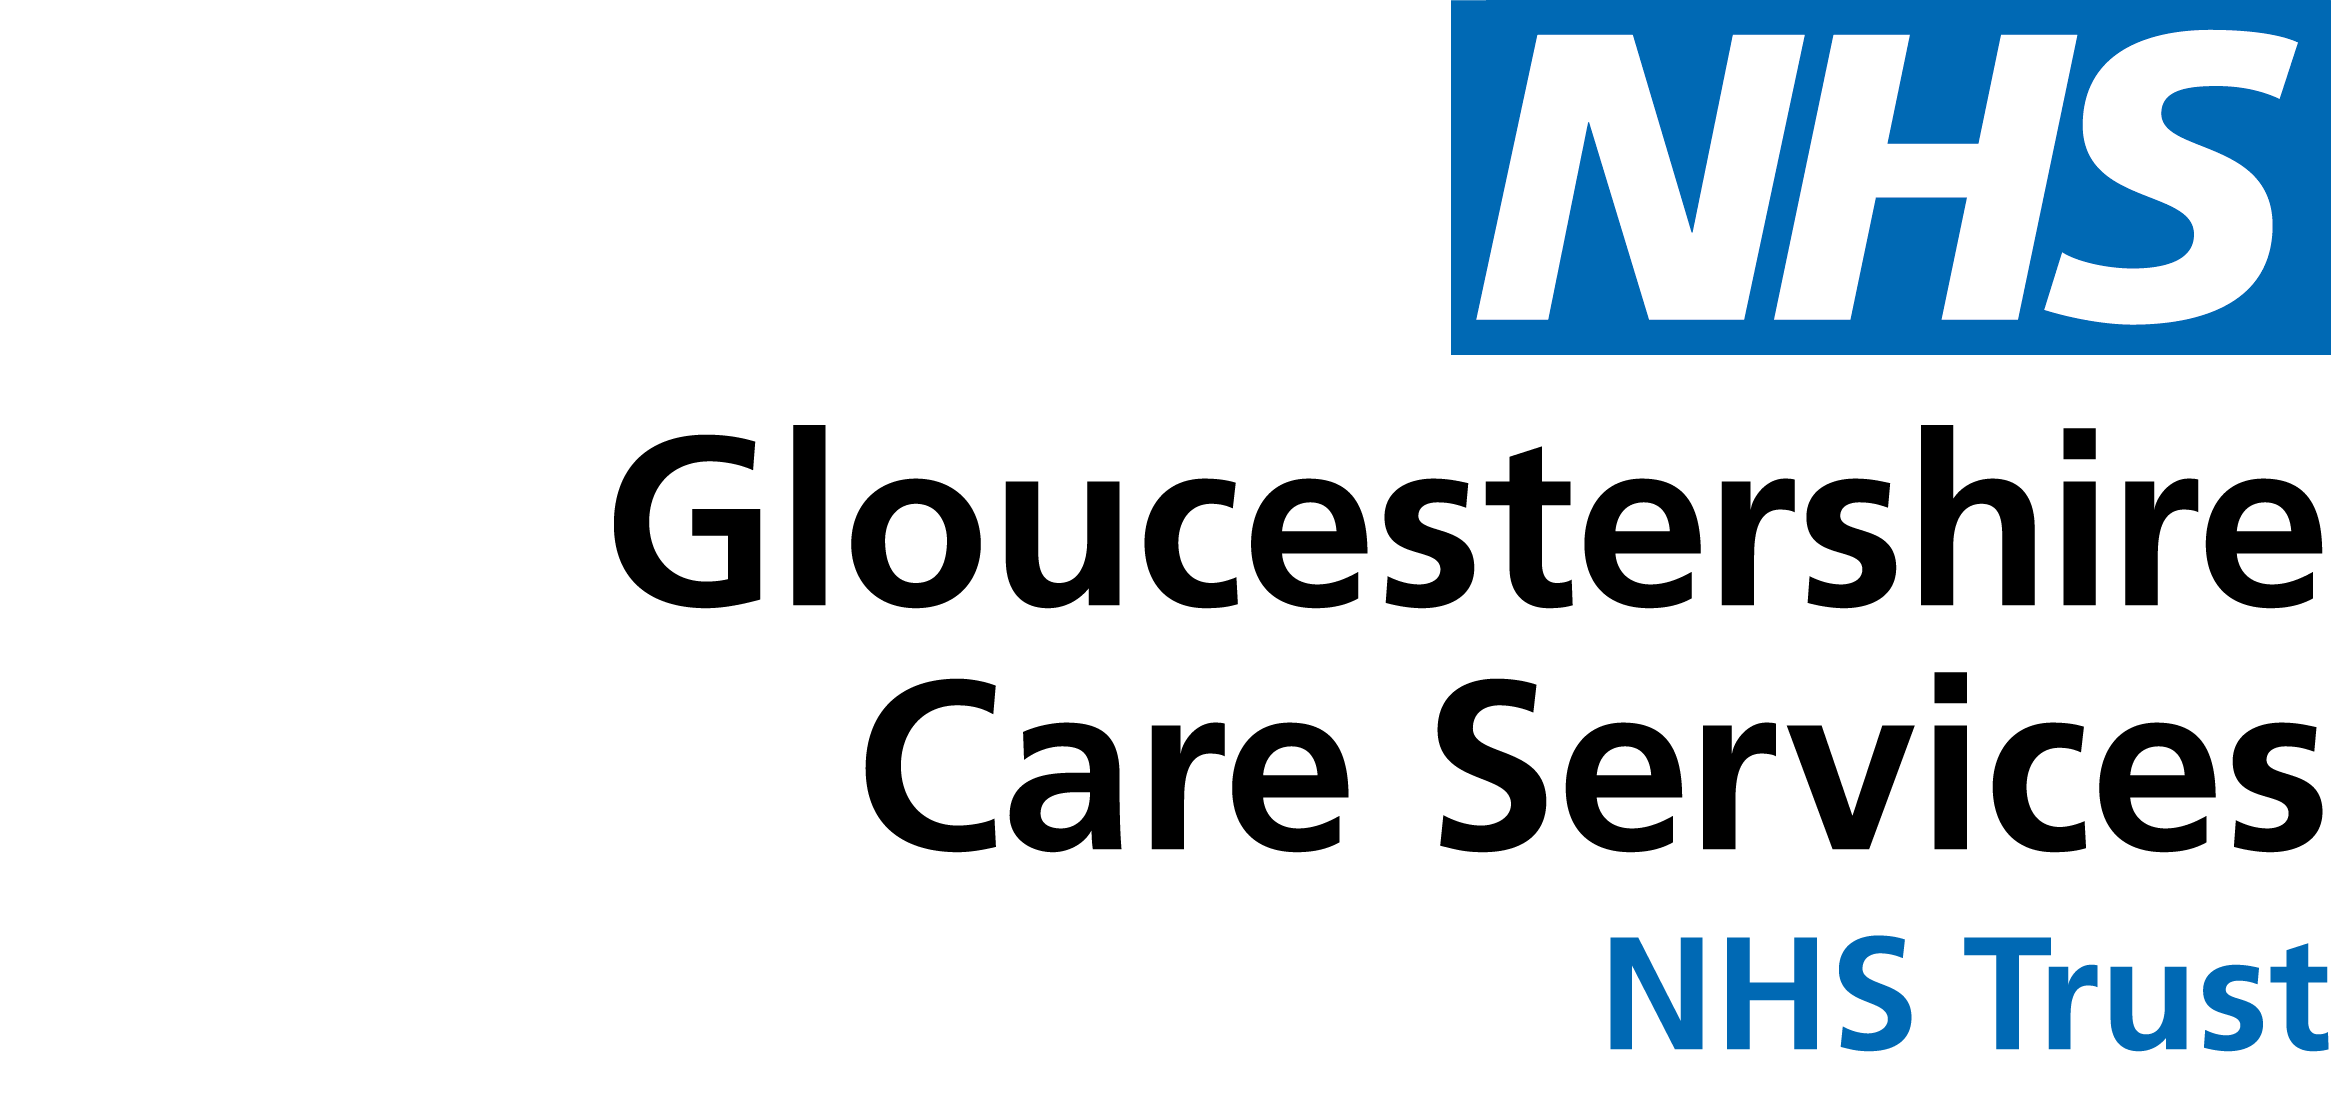 Gloucestershire Care Services NHS Trust